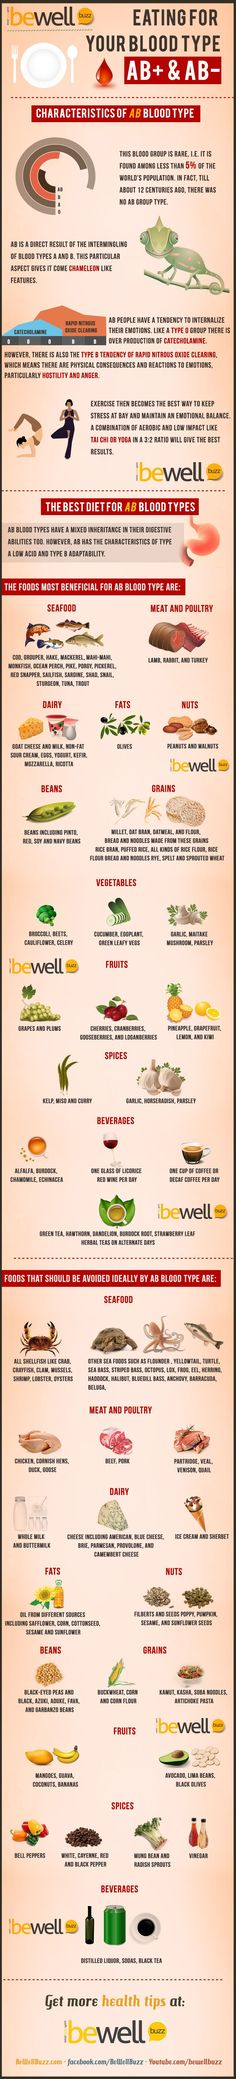 Eating right for your blood type ~ AB Blood Grouping Infographic